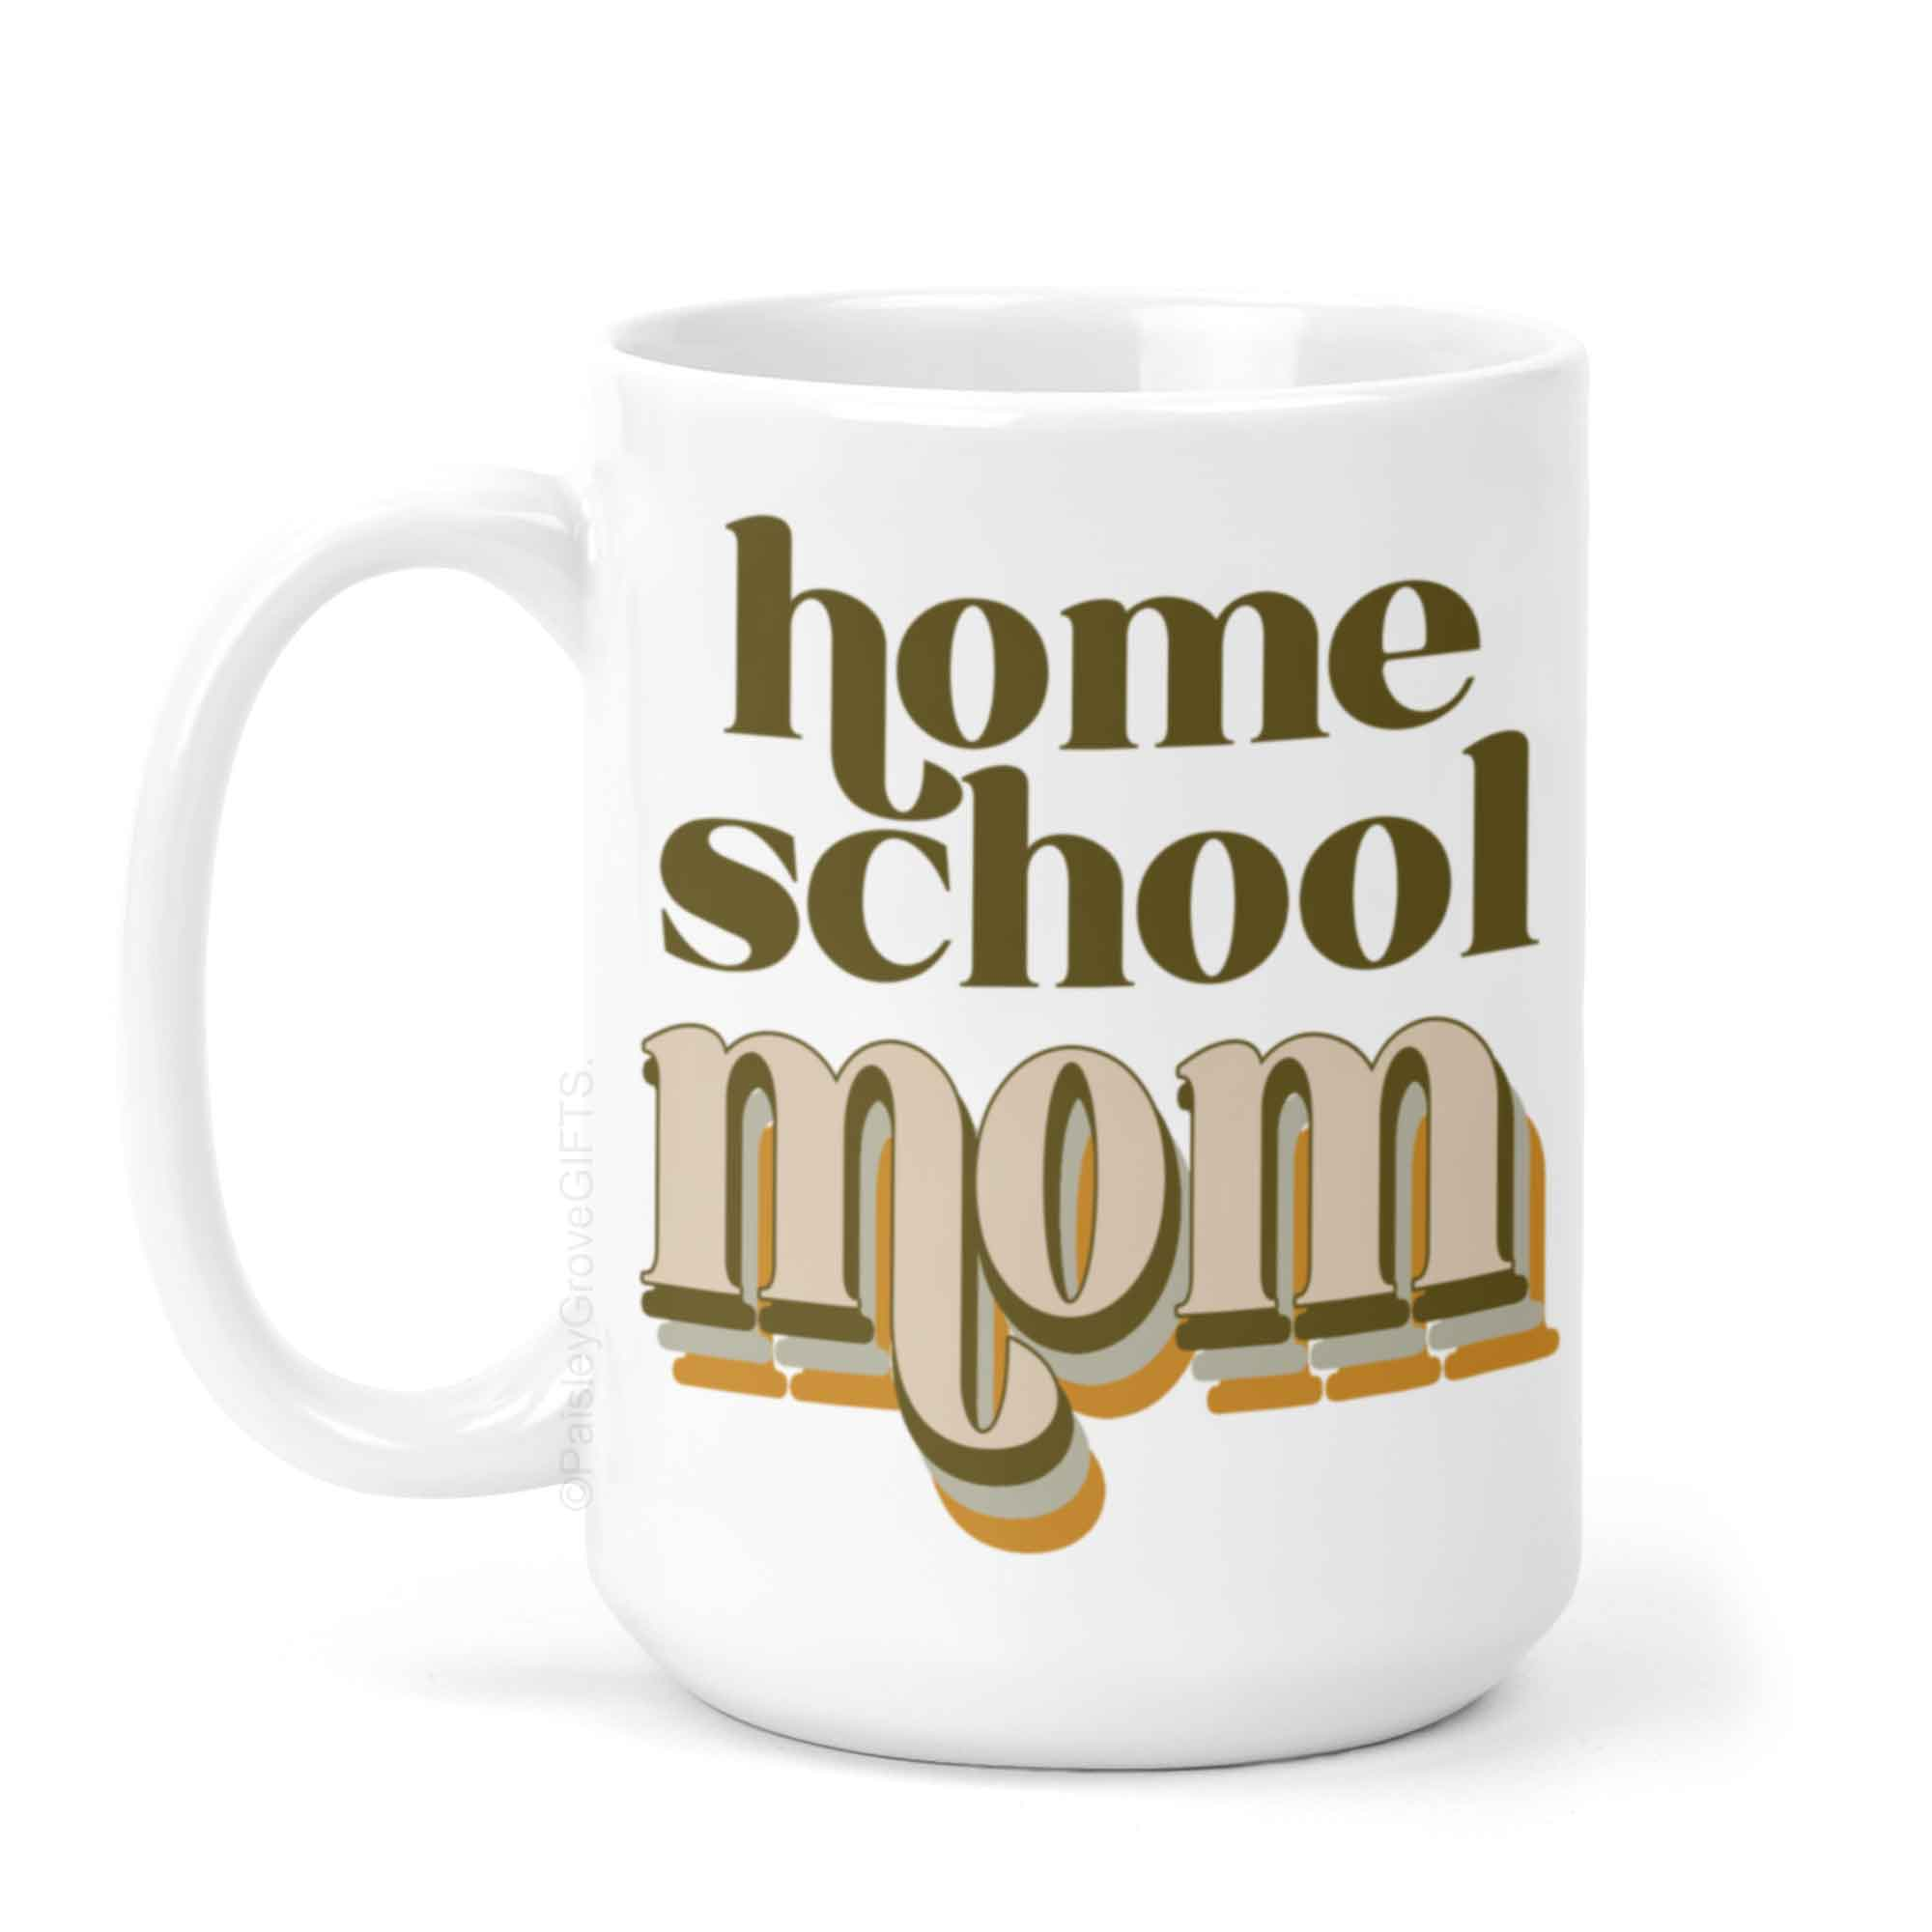 CopyrightPaisleyGroveGIFTS P001g Retro Homeschool Mom Coffee Mug in 70s modern boho colors